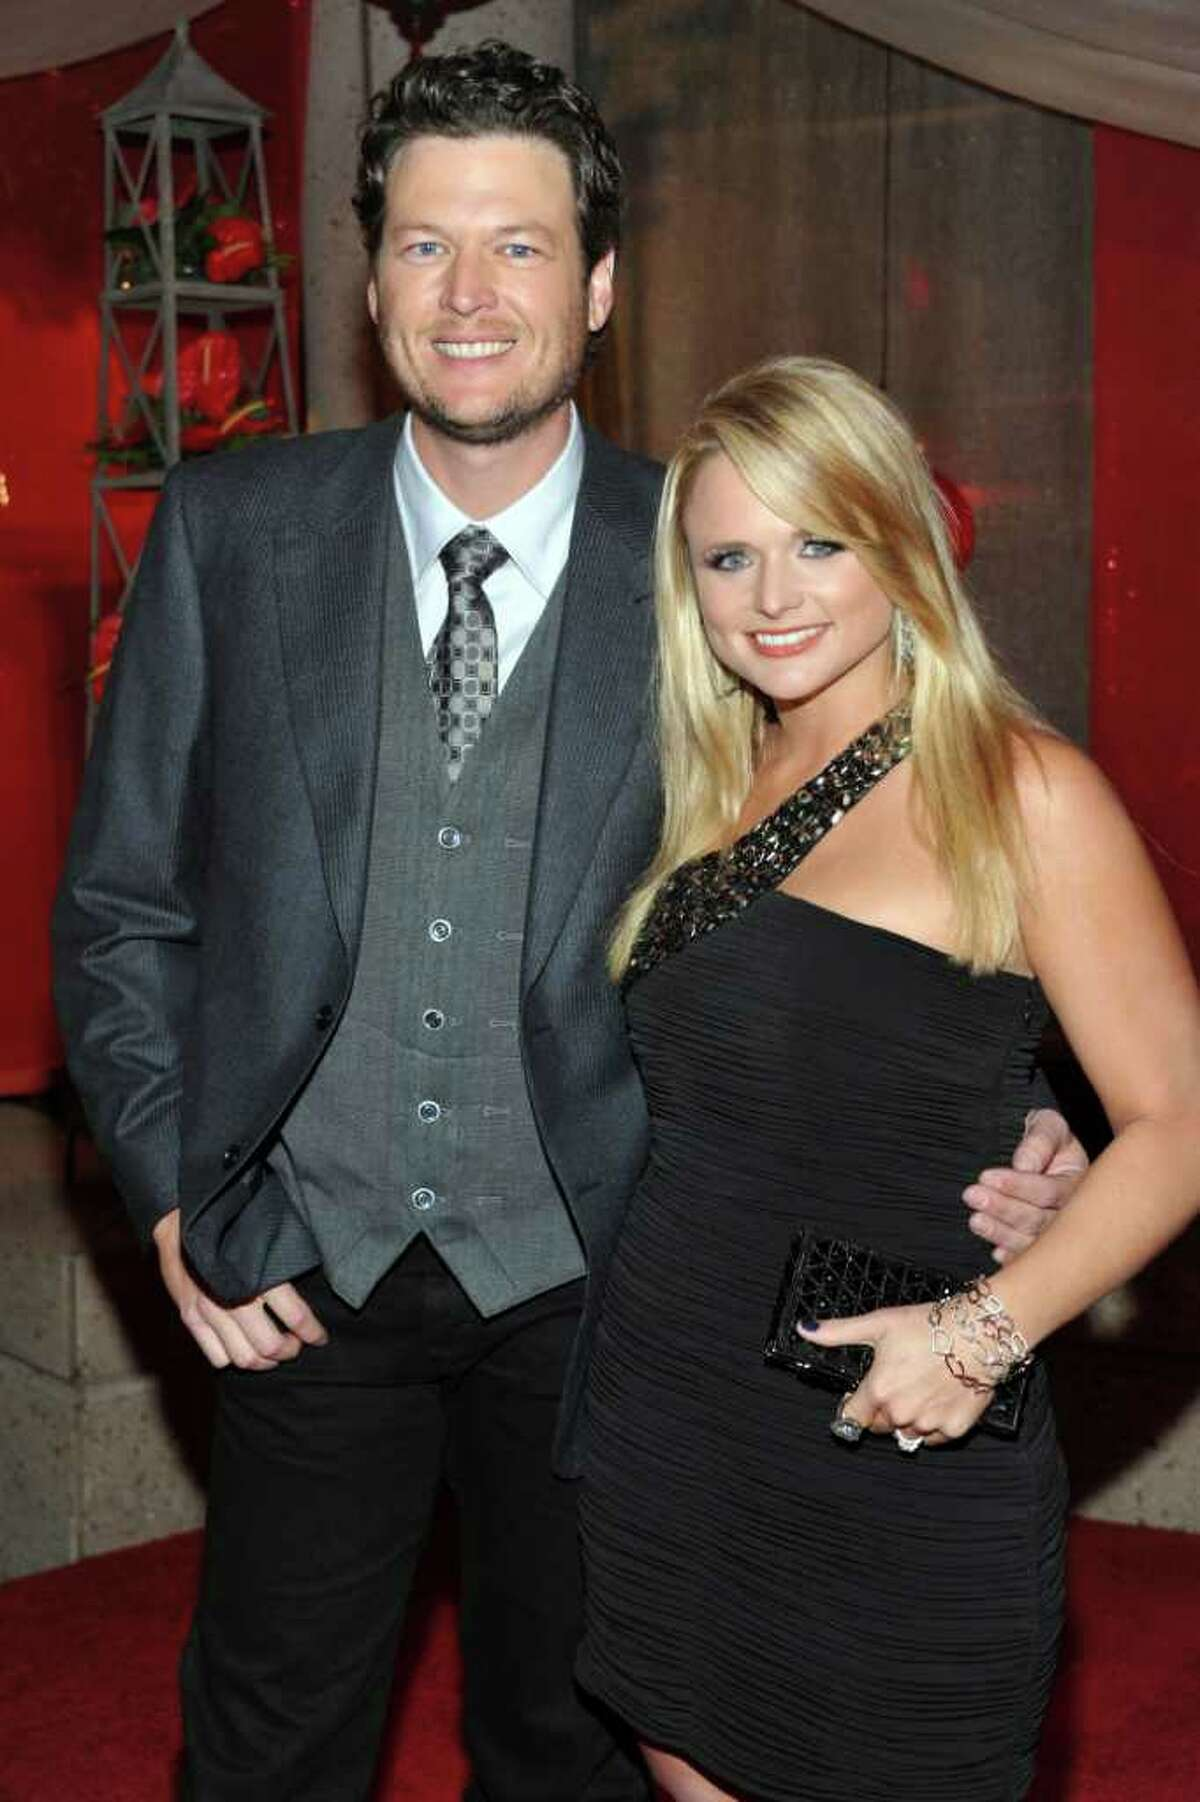 FILE - In this Nov. 9, 2010 file photo, recording artists Blake Shelton, left, and Miranda Lambert arrive at the 2010 BMI Country Awards in Nashville, Tenn. Shelton and Lambert will wed on Saturday, May 14, 2011 in Texas.